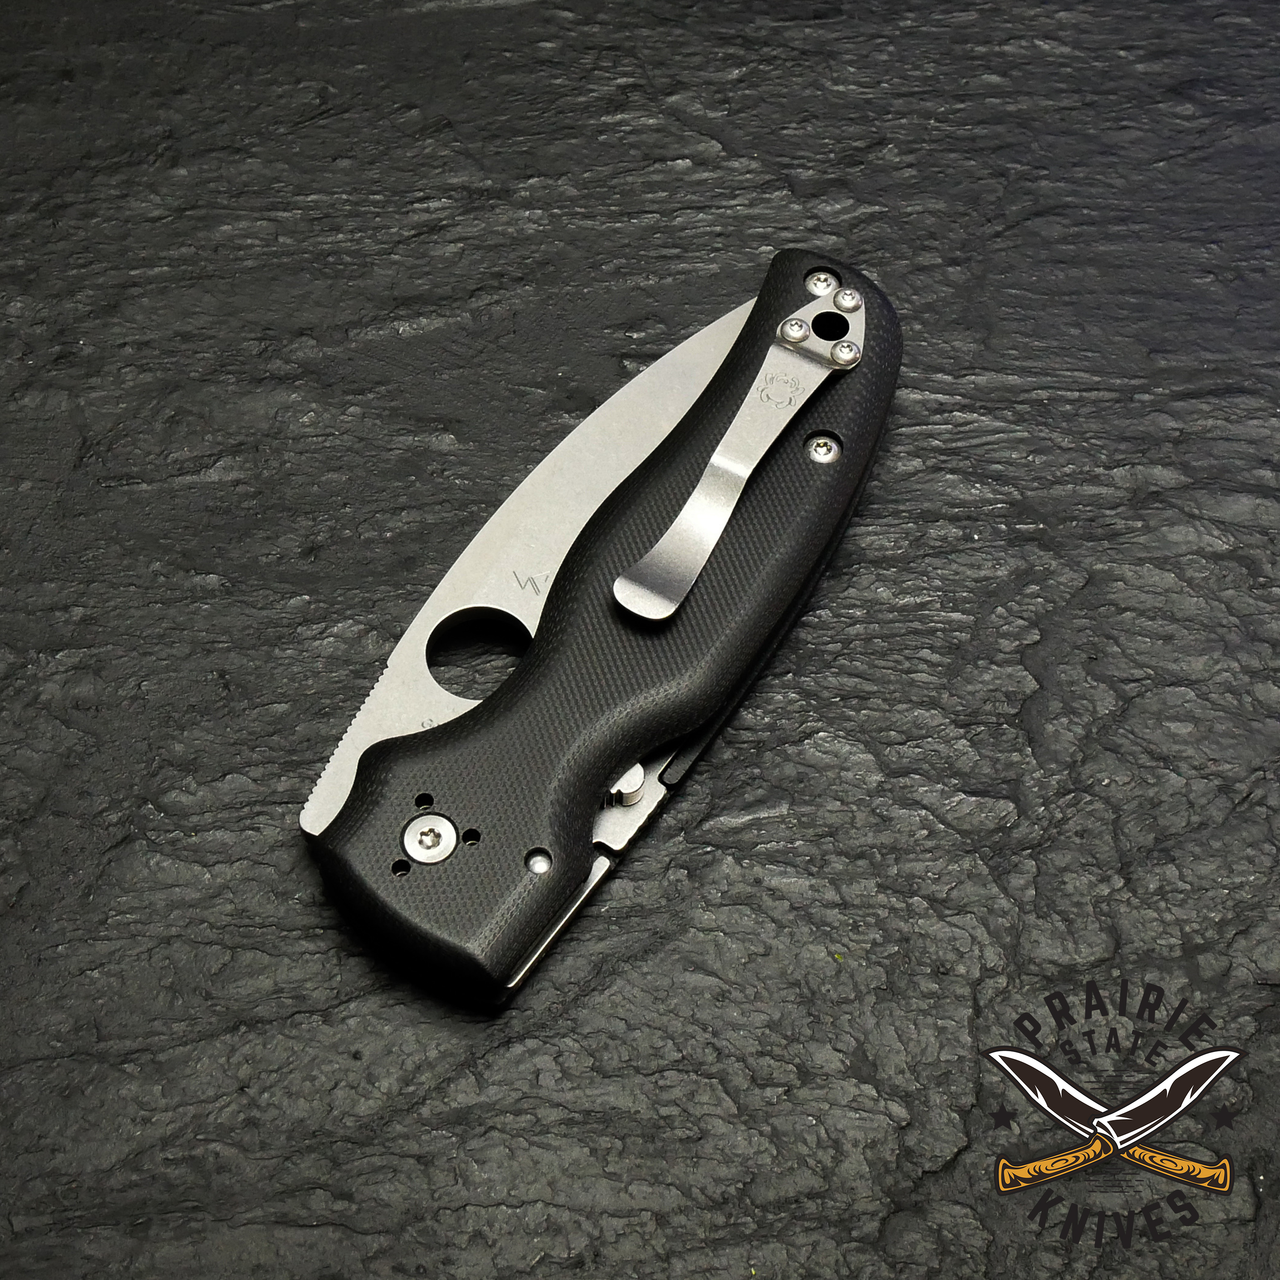 This robust construction forms the foundation of the knife's high-strength Compression Lock® mechanism, which locks the blade securely open and allows safe, easy one-handed closing.